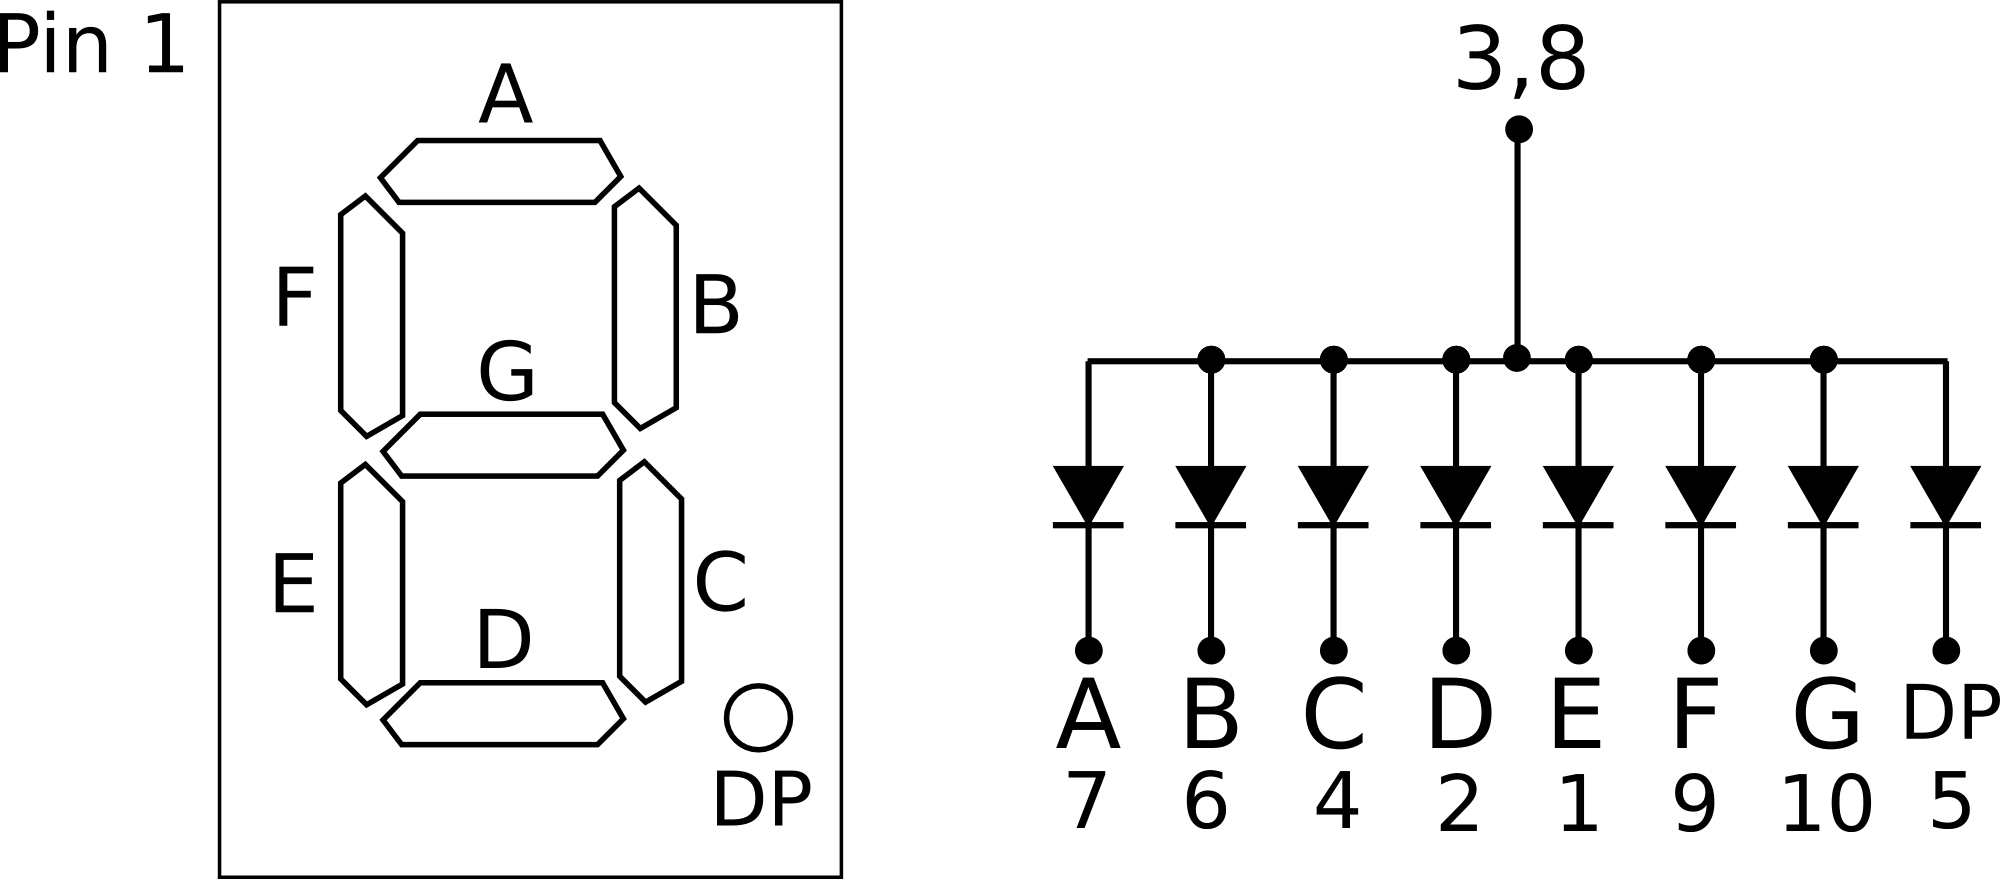 7-segment-LED-display-pinout